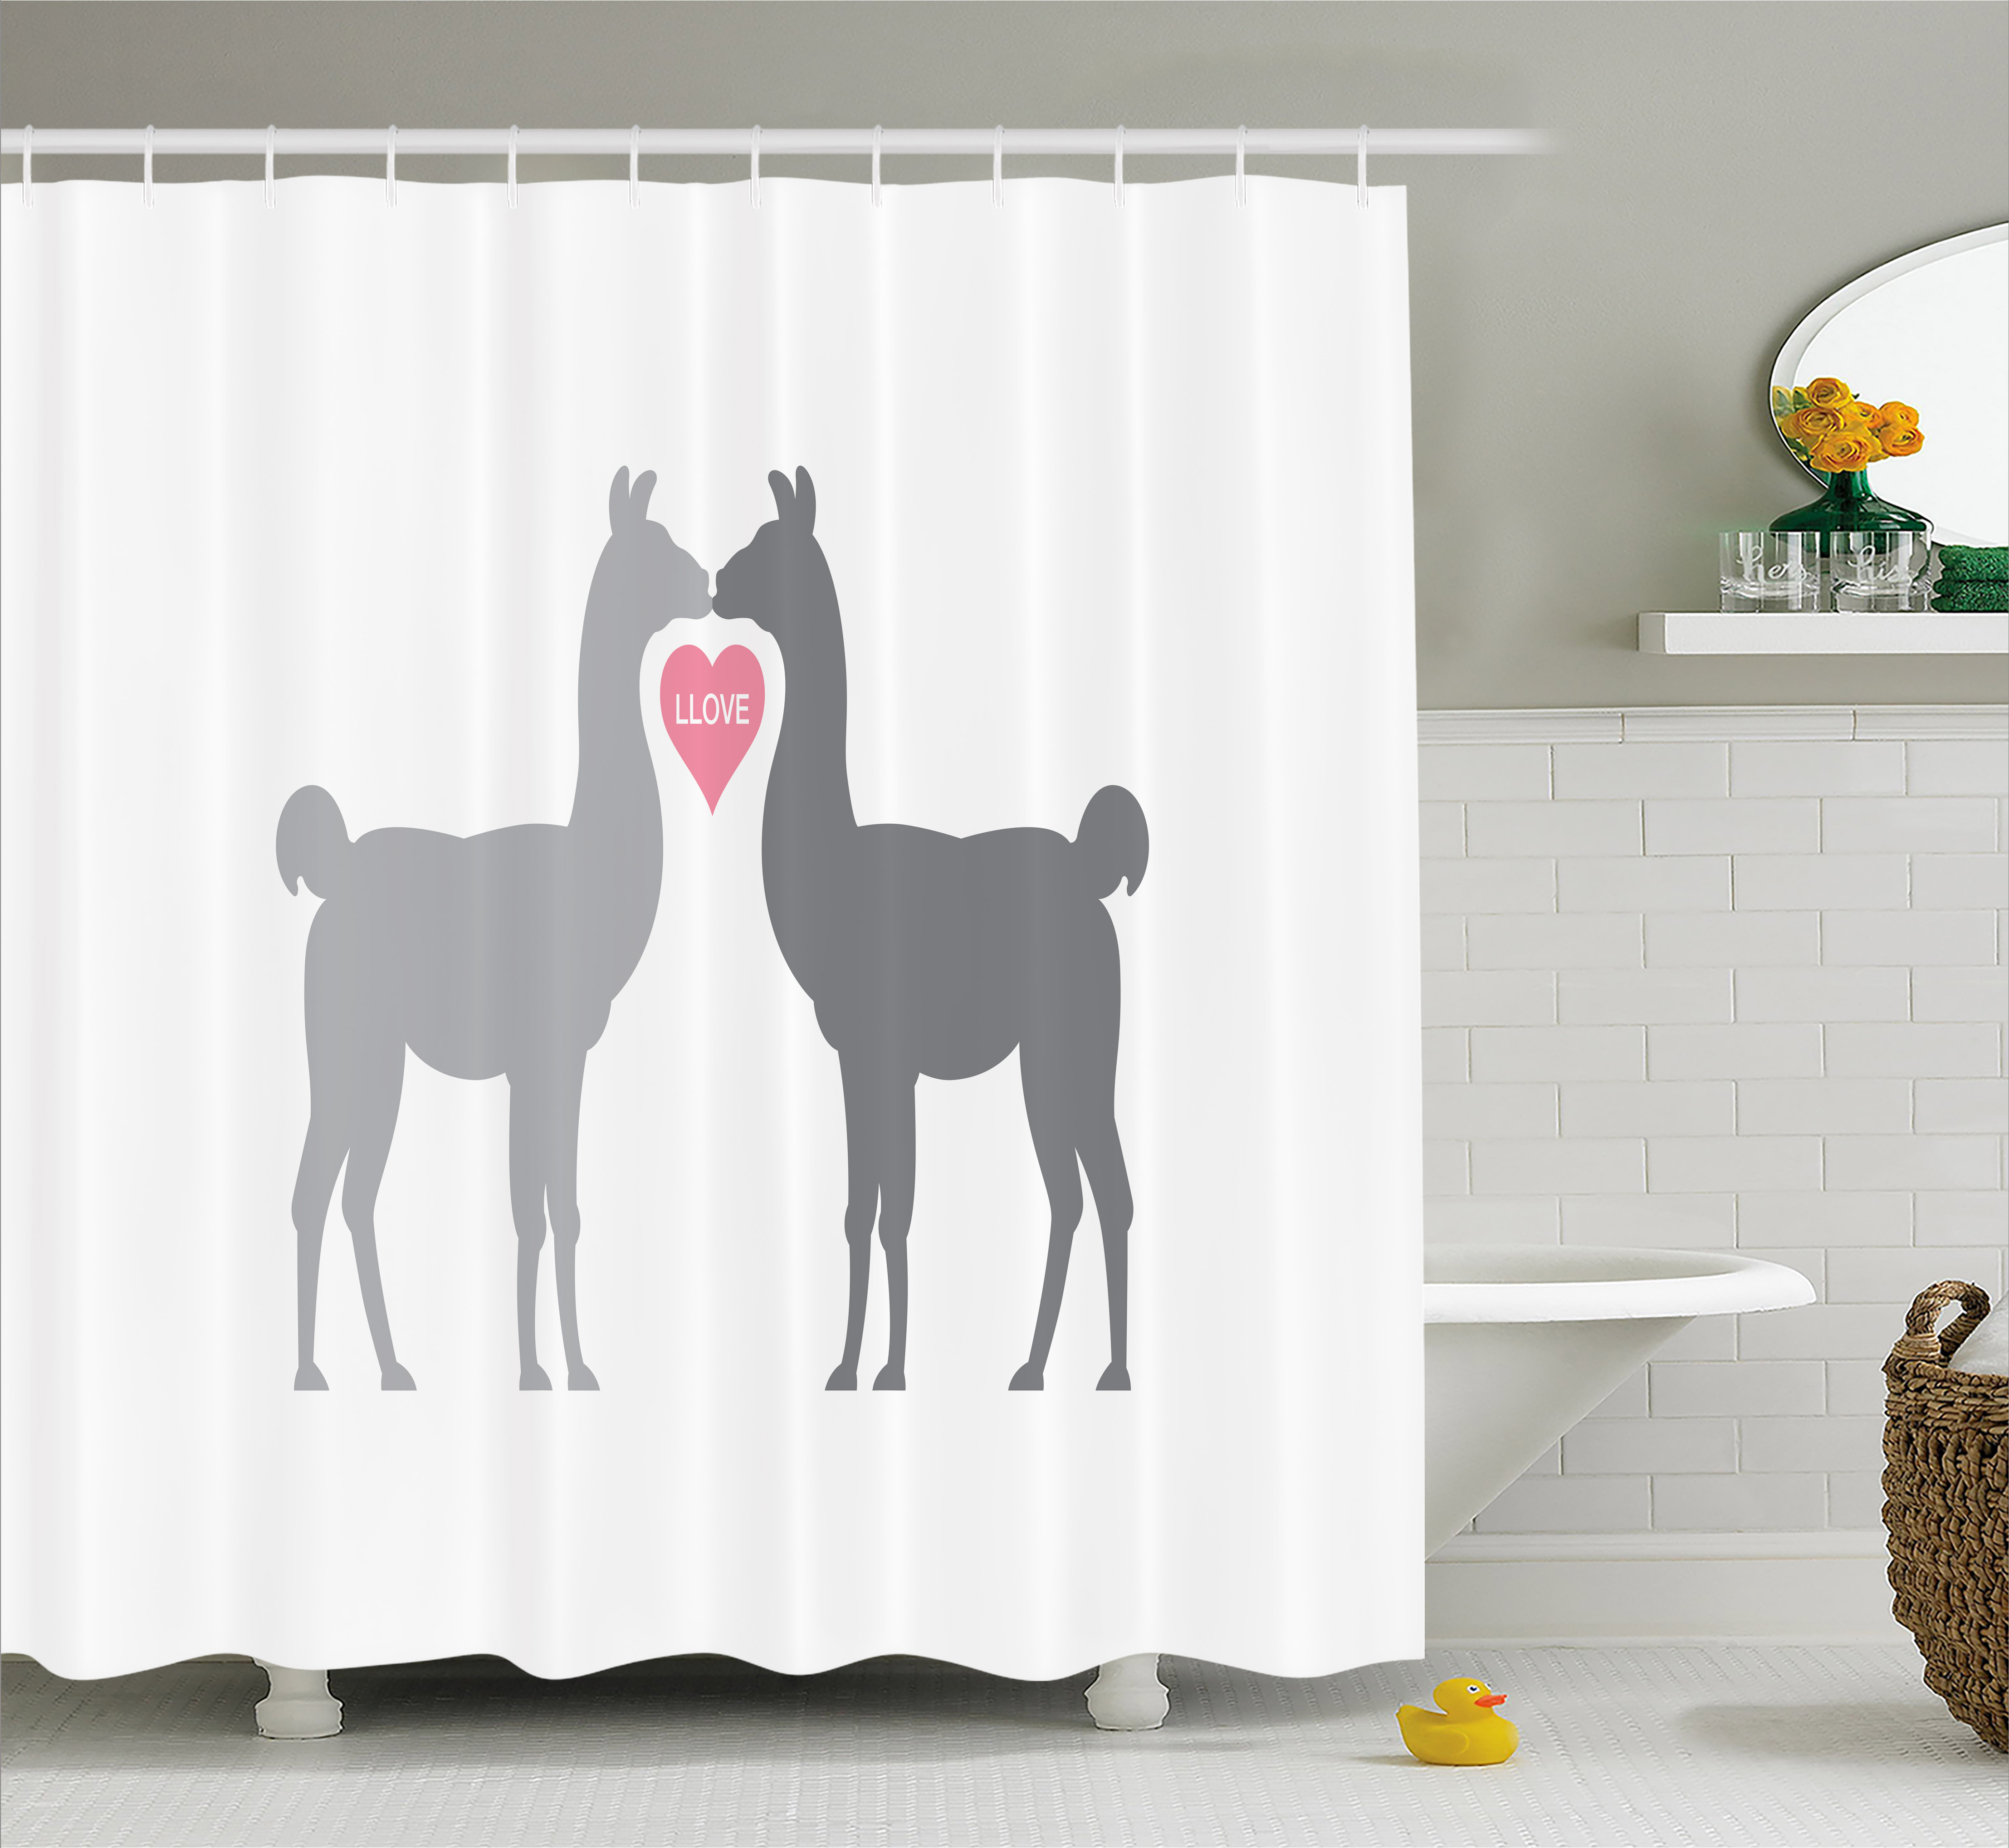 How To Create A Greyscale Bathroom: Llama Shower Curtain, Two Animals In Love With A Heart